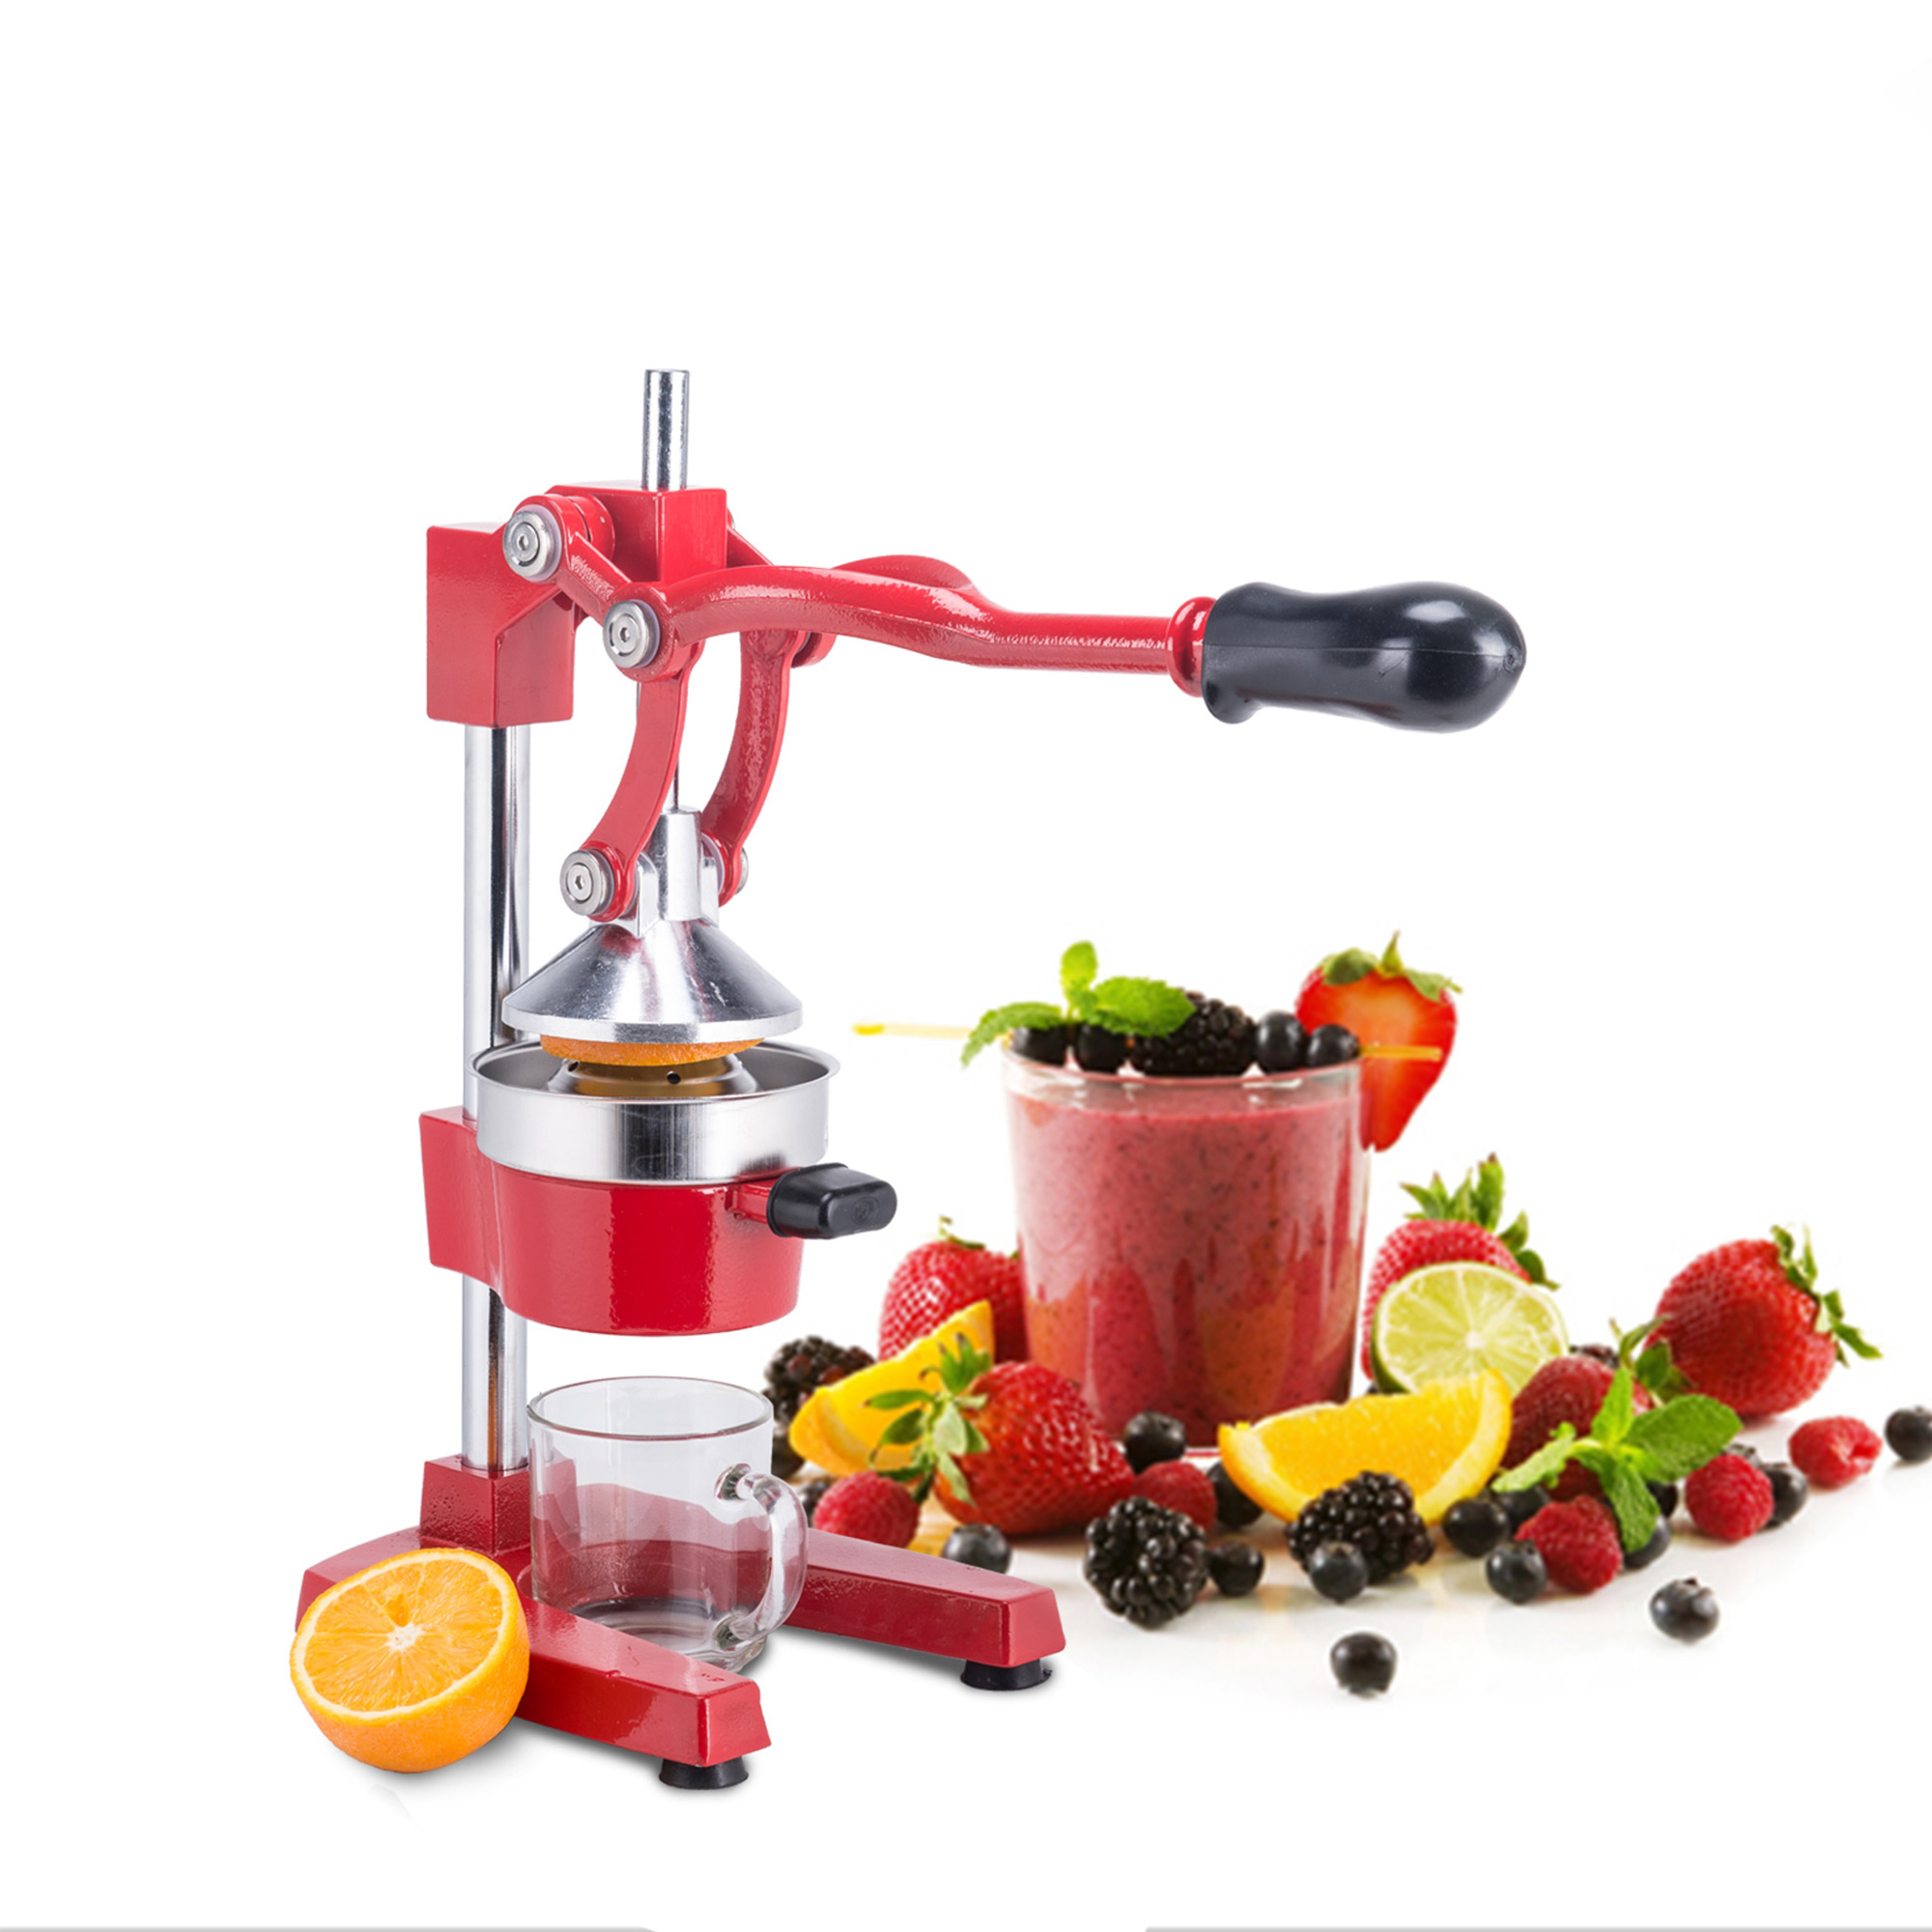 Manual Commercial Grade Citrus Orange Fruit Juicer Machine in Red for Restaurant & Home